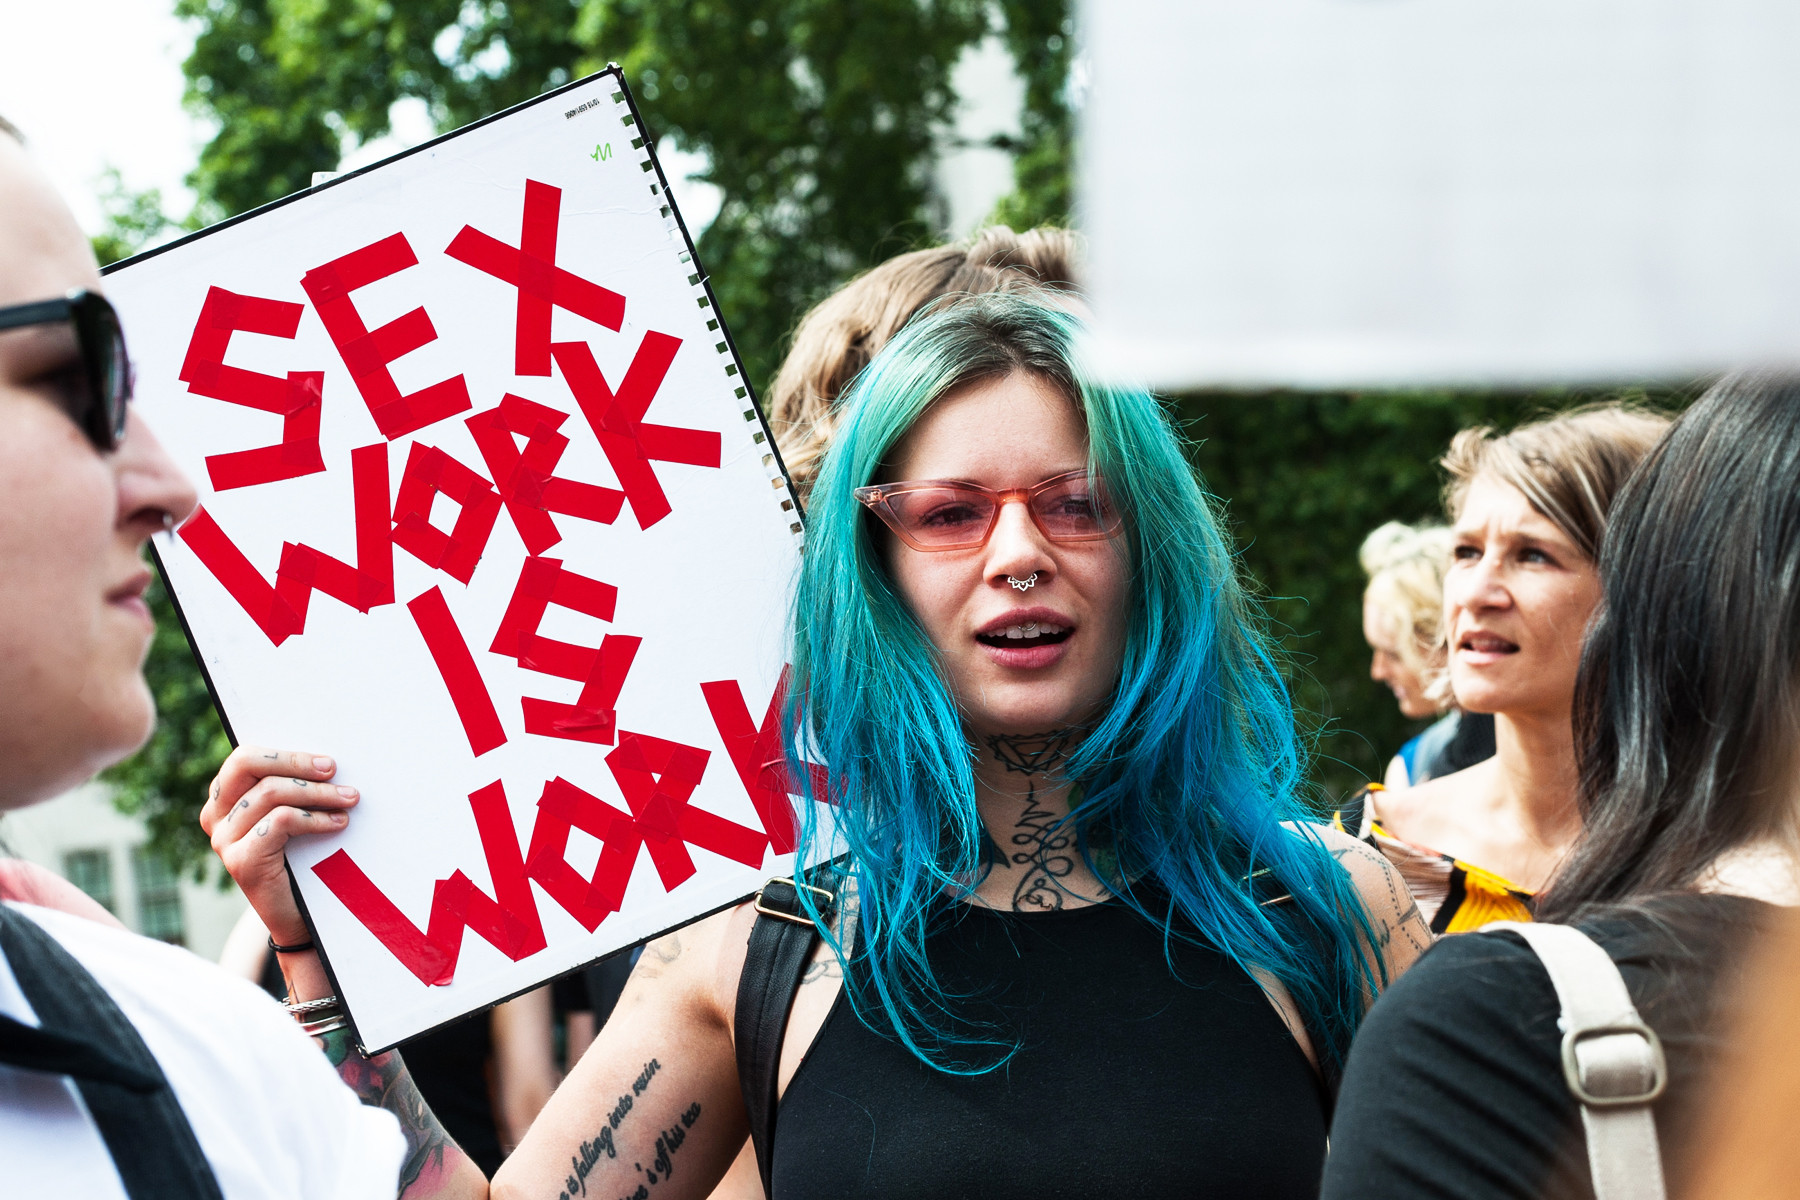 Protestors advocating for sex workers